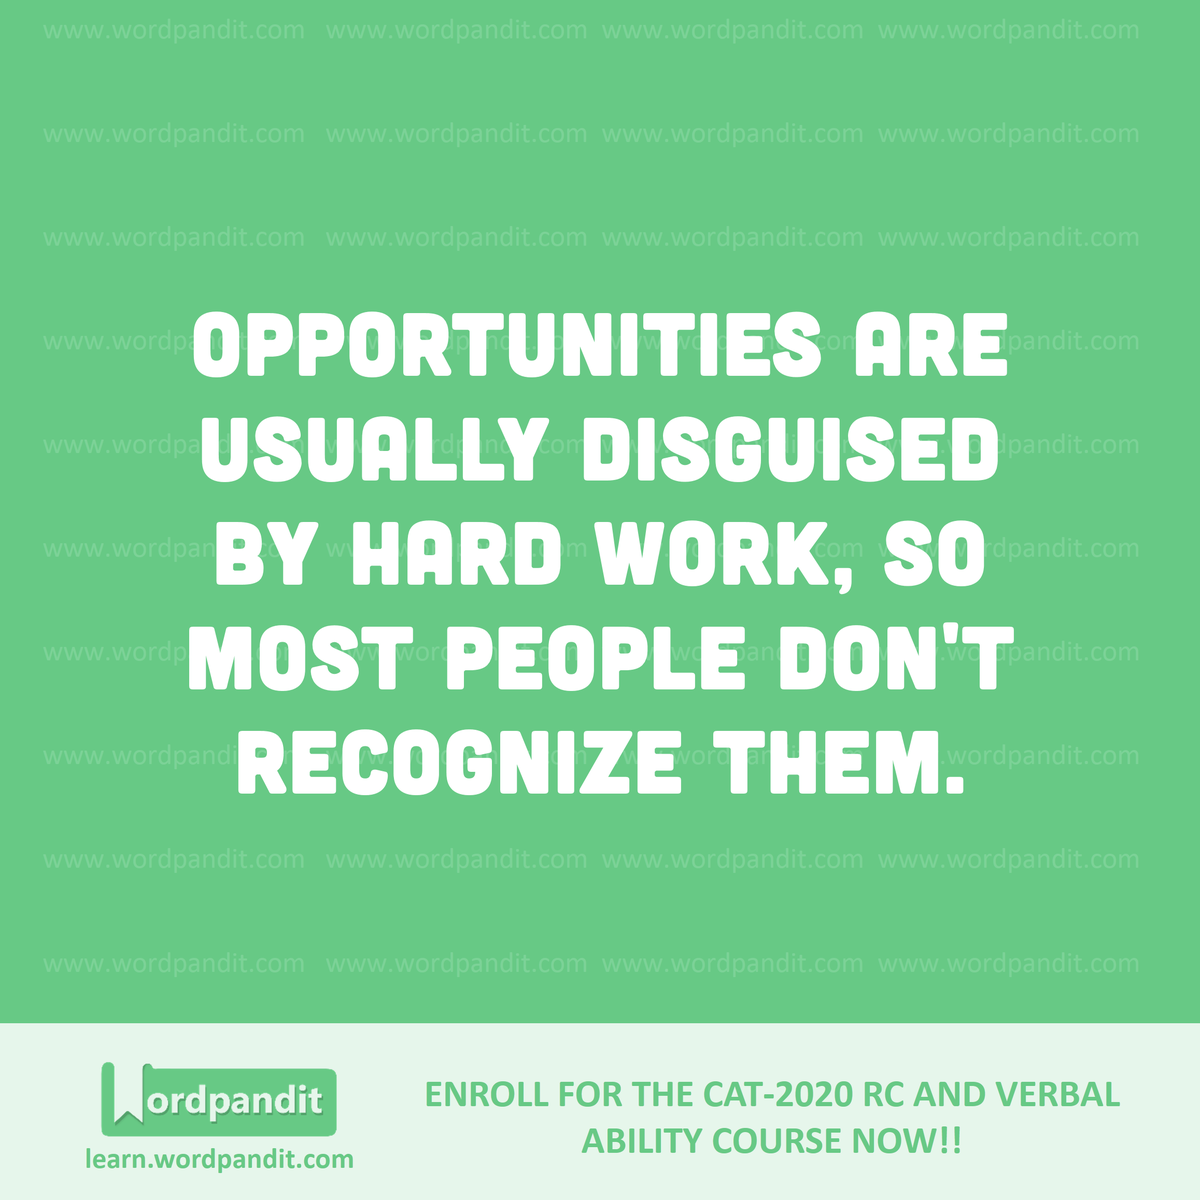 Opportunities are usually disguised by hard work, so most people don't recognize them.  #motivation #wordpandit #quotesdaily #examprep #bank #ssc #ipmat #mba #pgdbm #iims #varc #rc #cat2020 #gmat #gre #mbaprep #motivationalquote #nevergiveuppic.twitter.com/k6Ufl9Uxwe